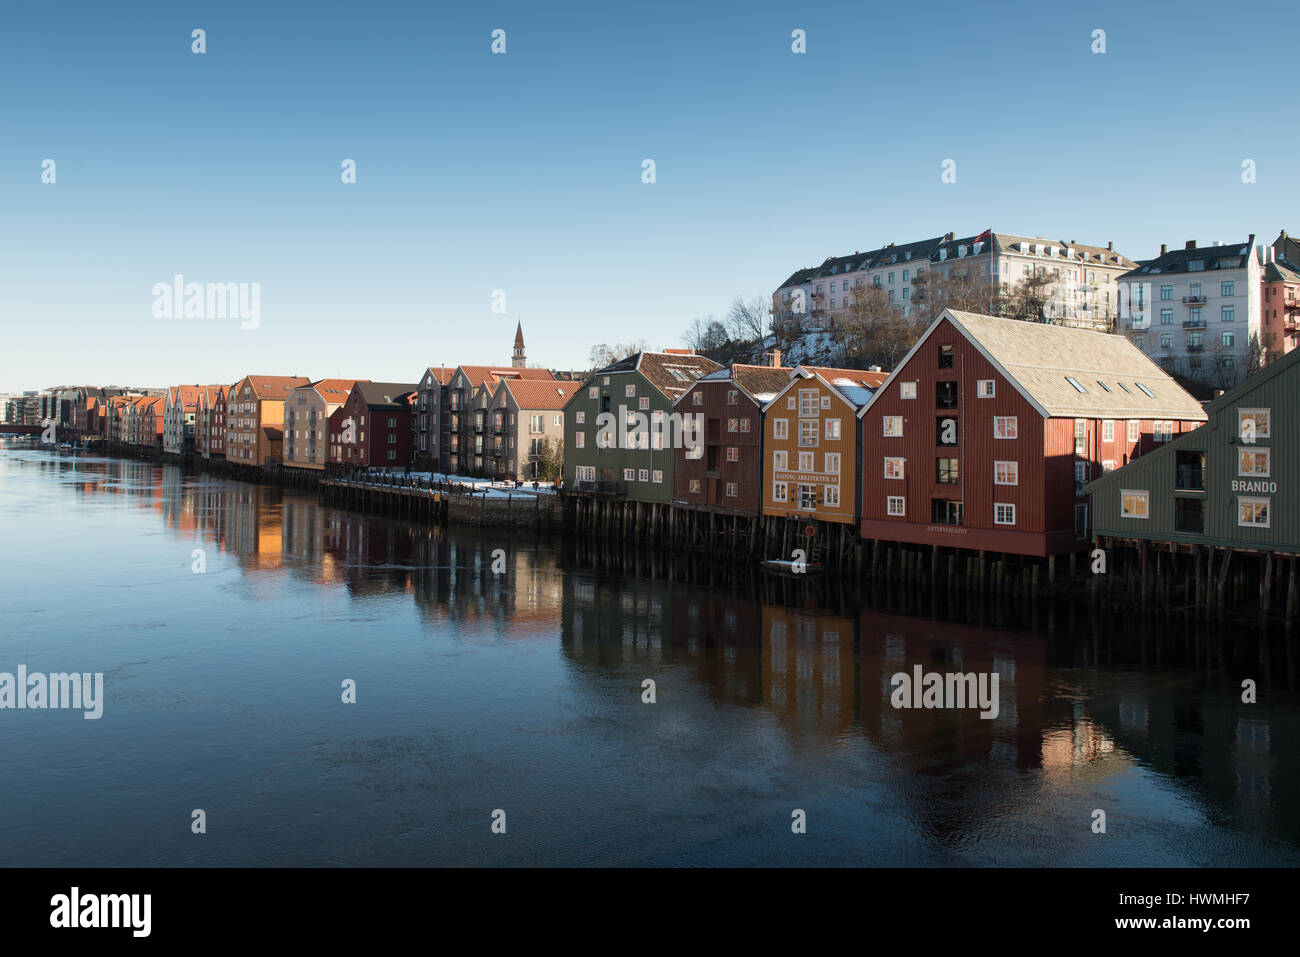 The wharves of Trondheim - Stock Image